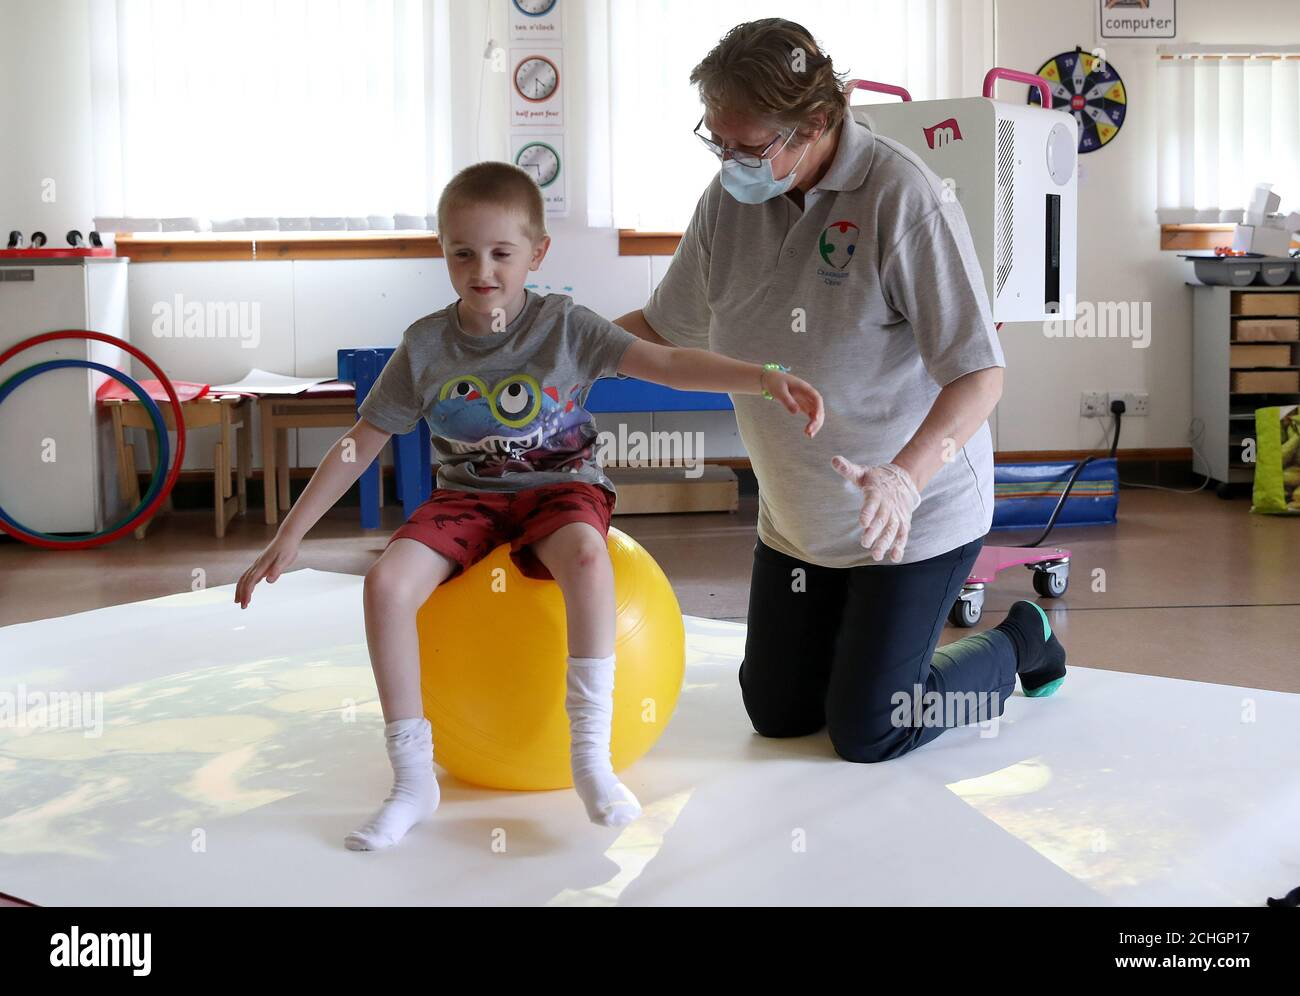 Embargoed to 0001 Monday June 22 Callum McMichael alongside Paediatric Physiotherapist Kath Brimlow as he takes part in 1:1 session supporting development of posture and movement skills at the Craighalbert Centre. Coronavirus adaptations have been installed at the Scottish Centre for Children with Motor Impairments, Craighalbert Centre, Cumbernauld, as Scotland continues gradually lifting coronavirus lockdown measures. Stock Photo